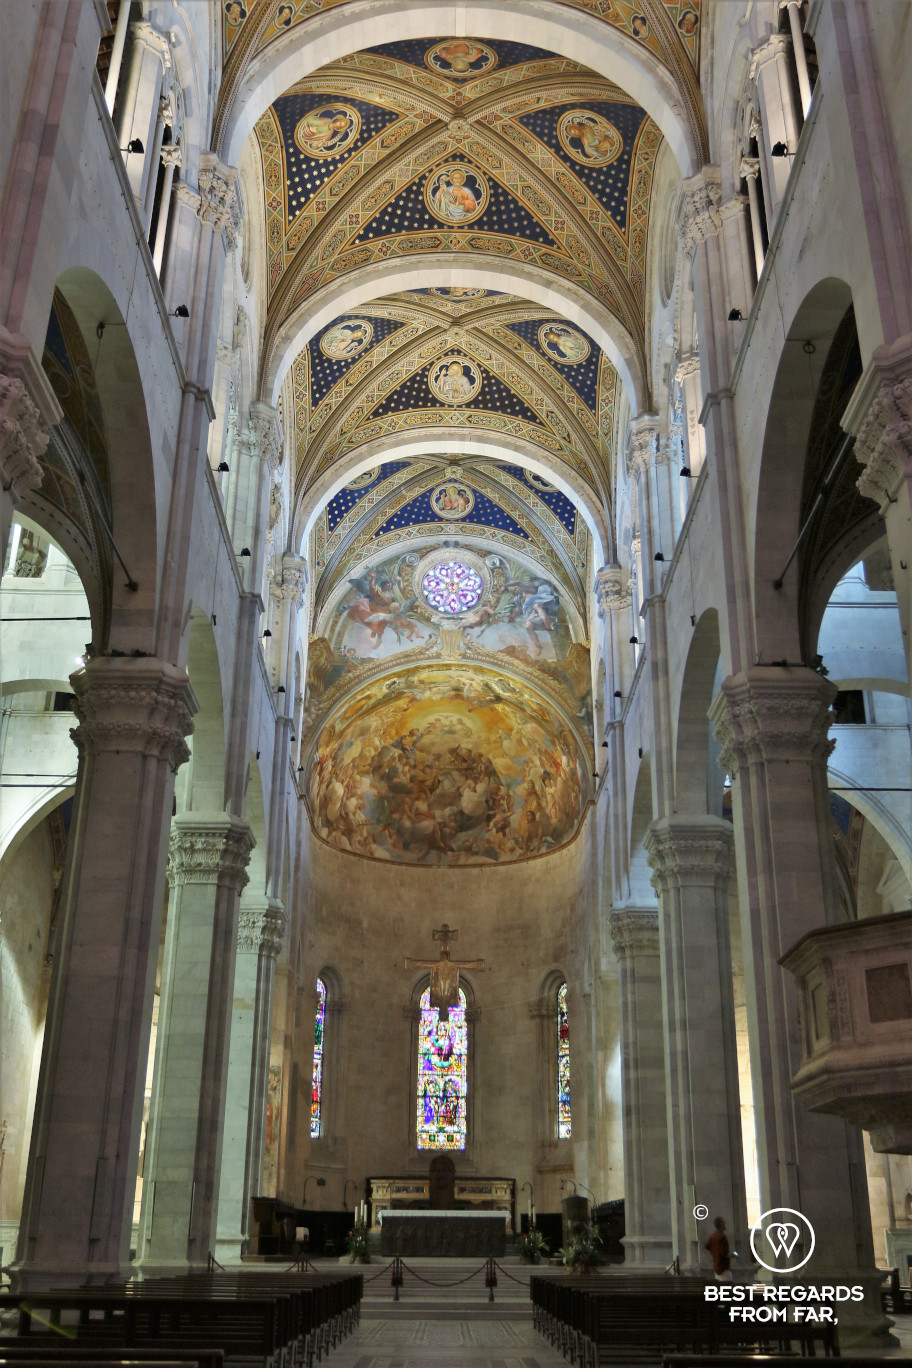 The interior of the Saint Martin Cathedral, Lucca, Italy